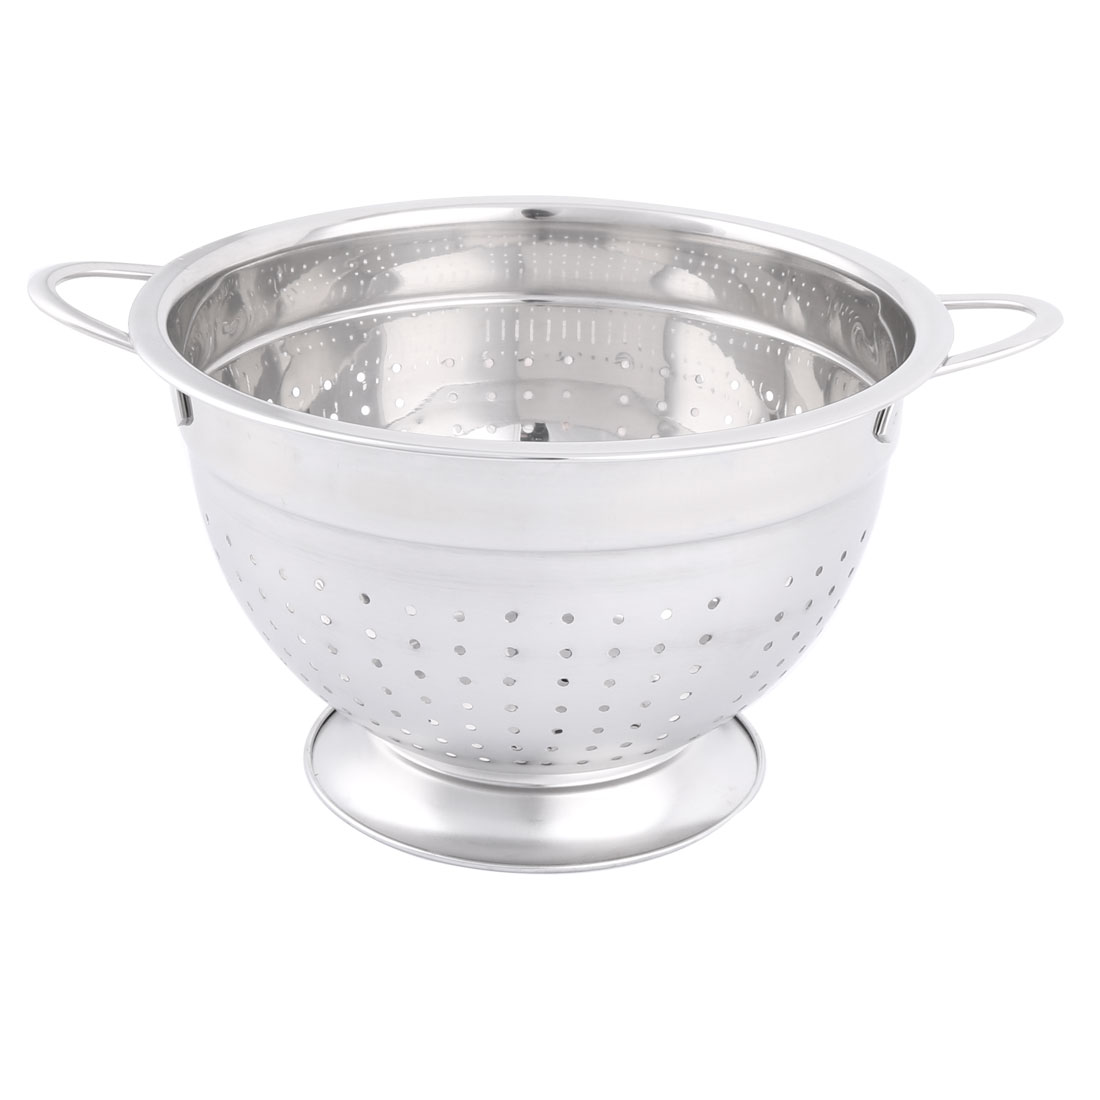 Household Stainless Steel Fruit Vegetable Nuts Drain Basket Silver Tone 20cm Dia